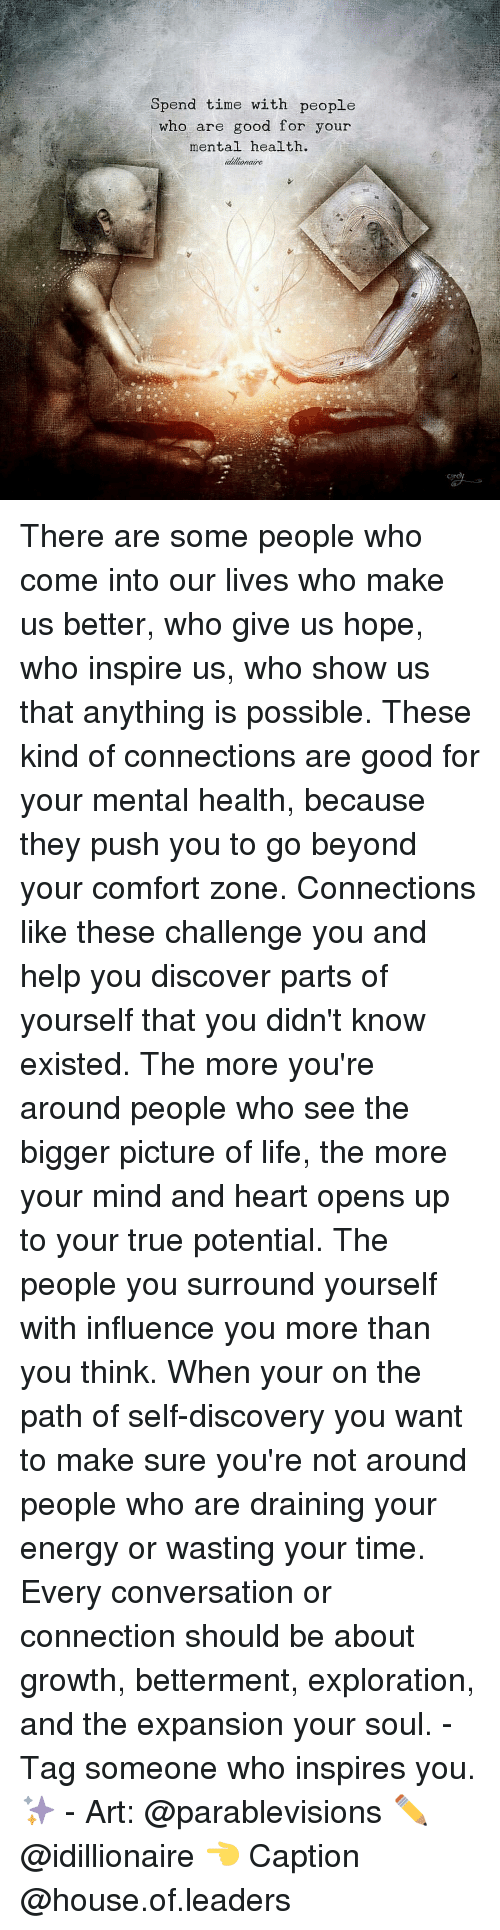 self discovery: Spend time with people  who are good for your  mental health.  tallionaire There are some people who come into our lives who make us better, who give us hope, who inspire us, who show us that anything is possible. These kind of connections are good for your mental health, because they push you to go beyond your comfort zone. Connections like these challenge you and help you discover parts of yourself that you didn't know existed. The more you're around people who see the bigger picture of life, the more your mind and heart opens up to your true potential. The people you surround yourself with influence you more than you think. When your on the path of self-discovery you want to make sure you're not around people who are draining your energy or wasting your time. Every conversation or connection should be about growth, betterment, exploration, and the expansion your soul. - Tag someone who inspires you. ✨ - Art: @parablevisions ✏ @idillionaire 👈 Caption @house.of.leaders